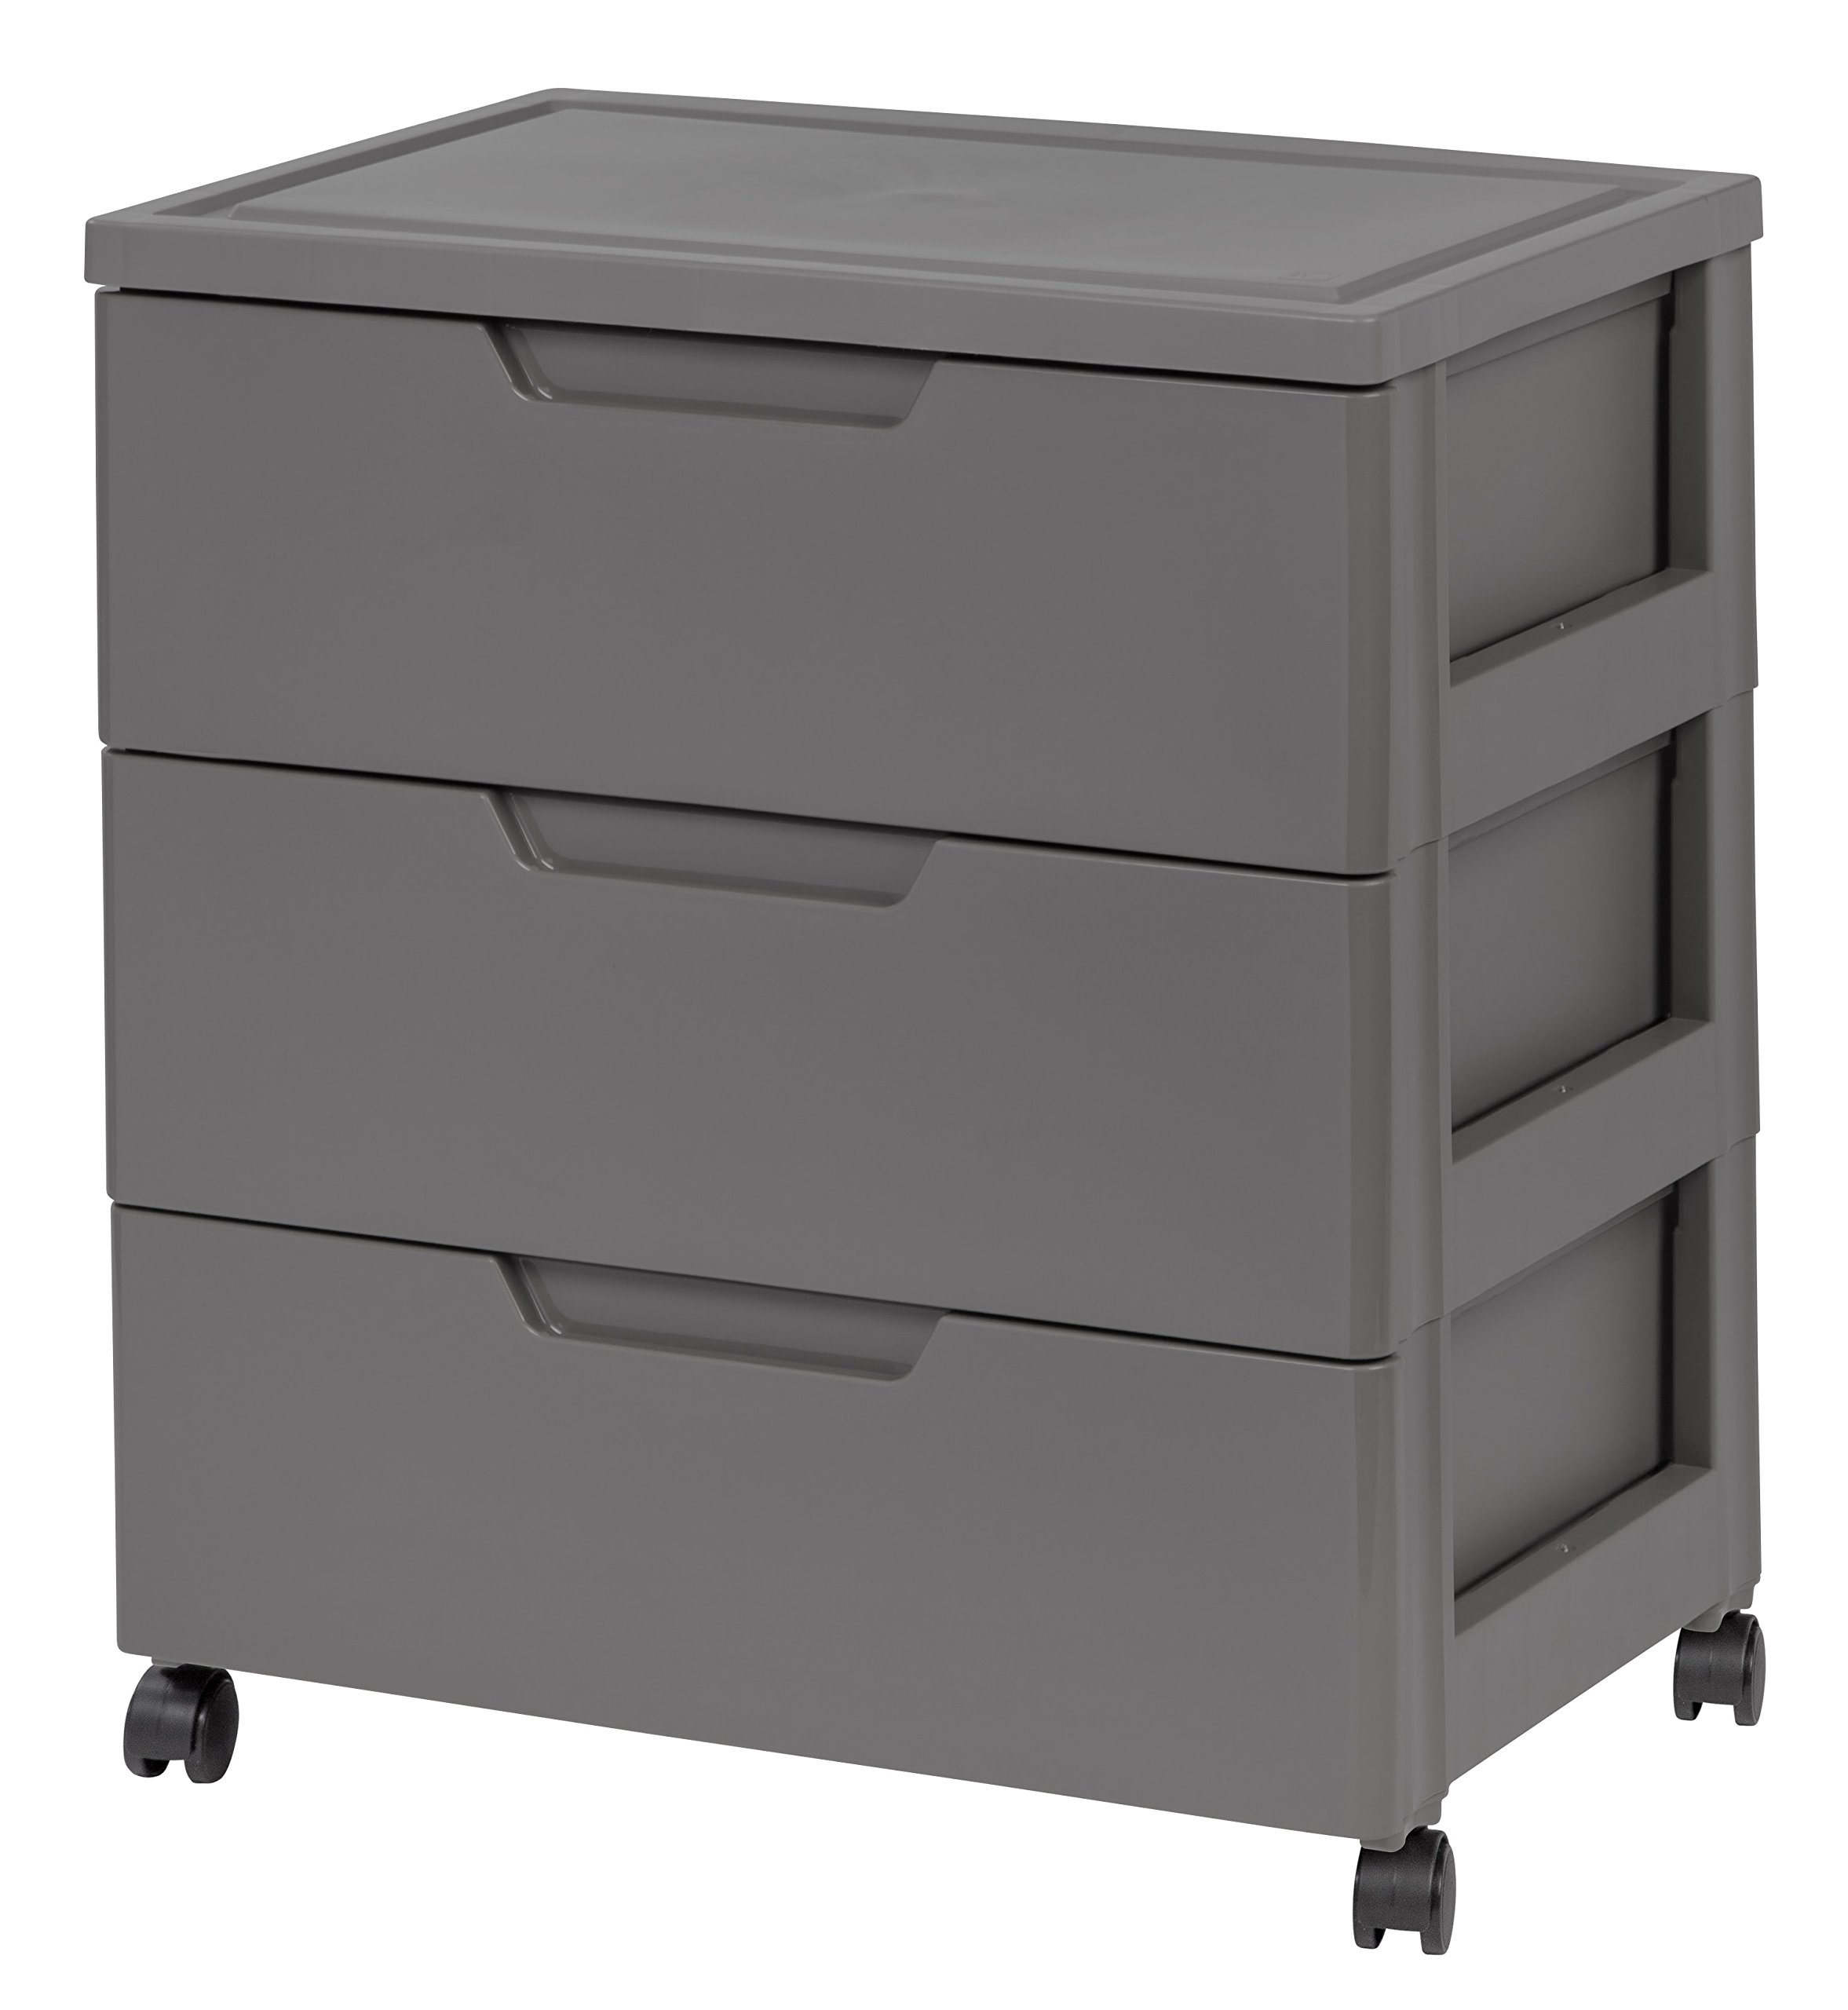 IRIS 3 Drawer Wide Chest, Gray - High grade chest provides an excellent storage and organizing solution Furniture grade drawer stops and built-in drawer pulls for ease of opening Includes four casters for easy mobility - dressers-bedroom-furniture, bedroom-furniture, bedroom - 71tNACOuYwL -